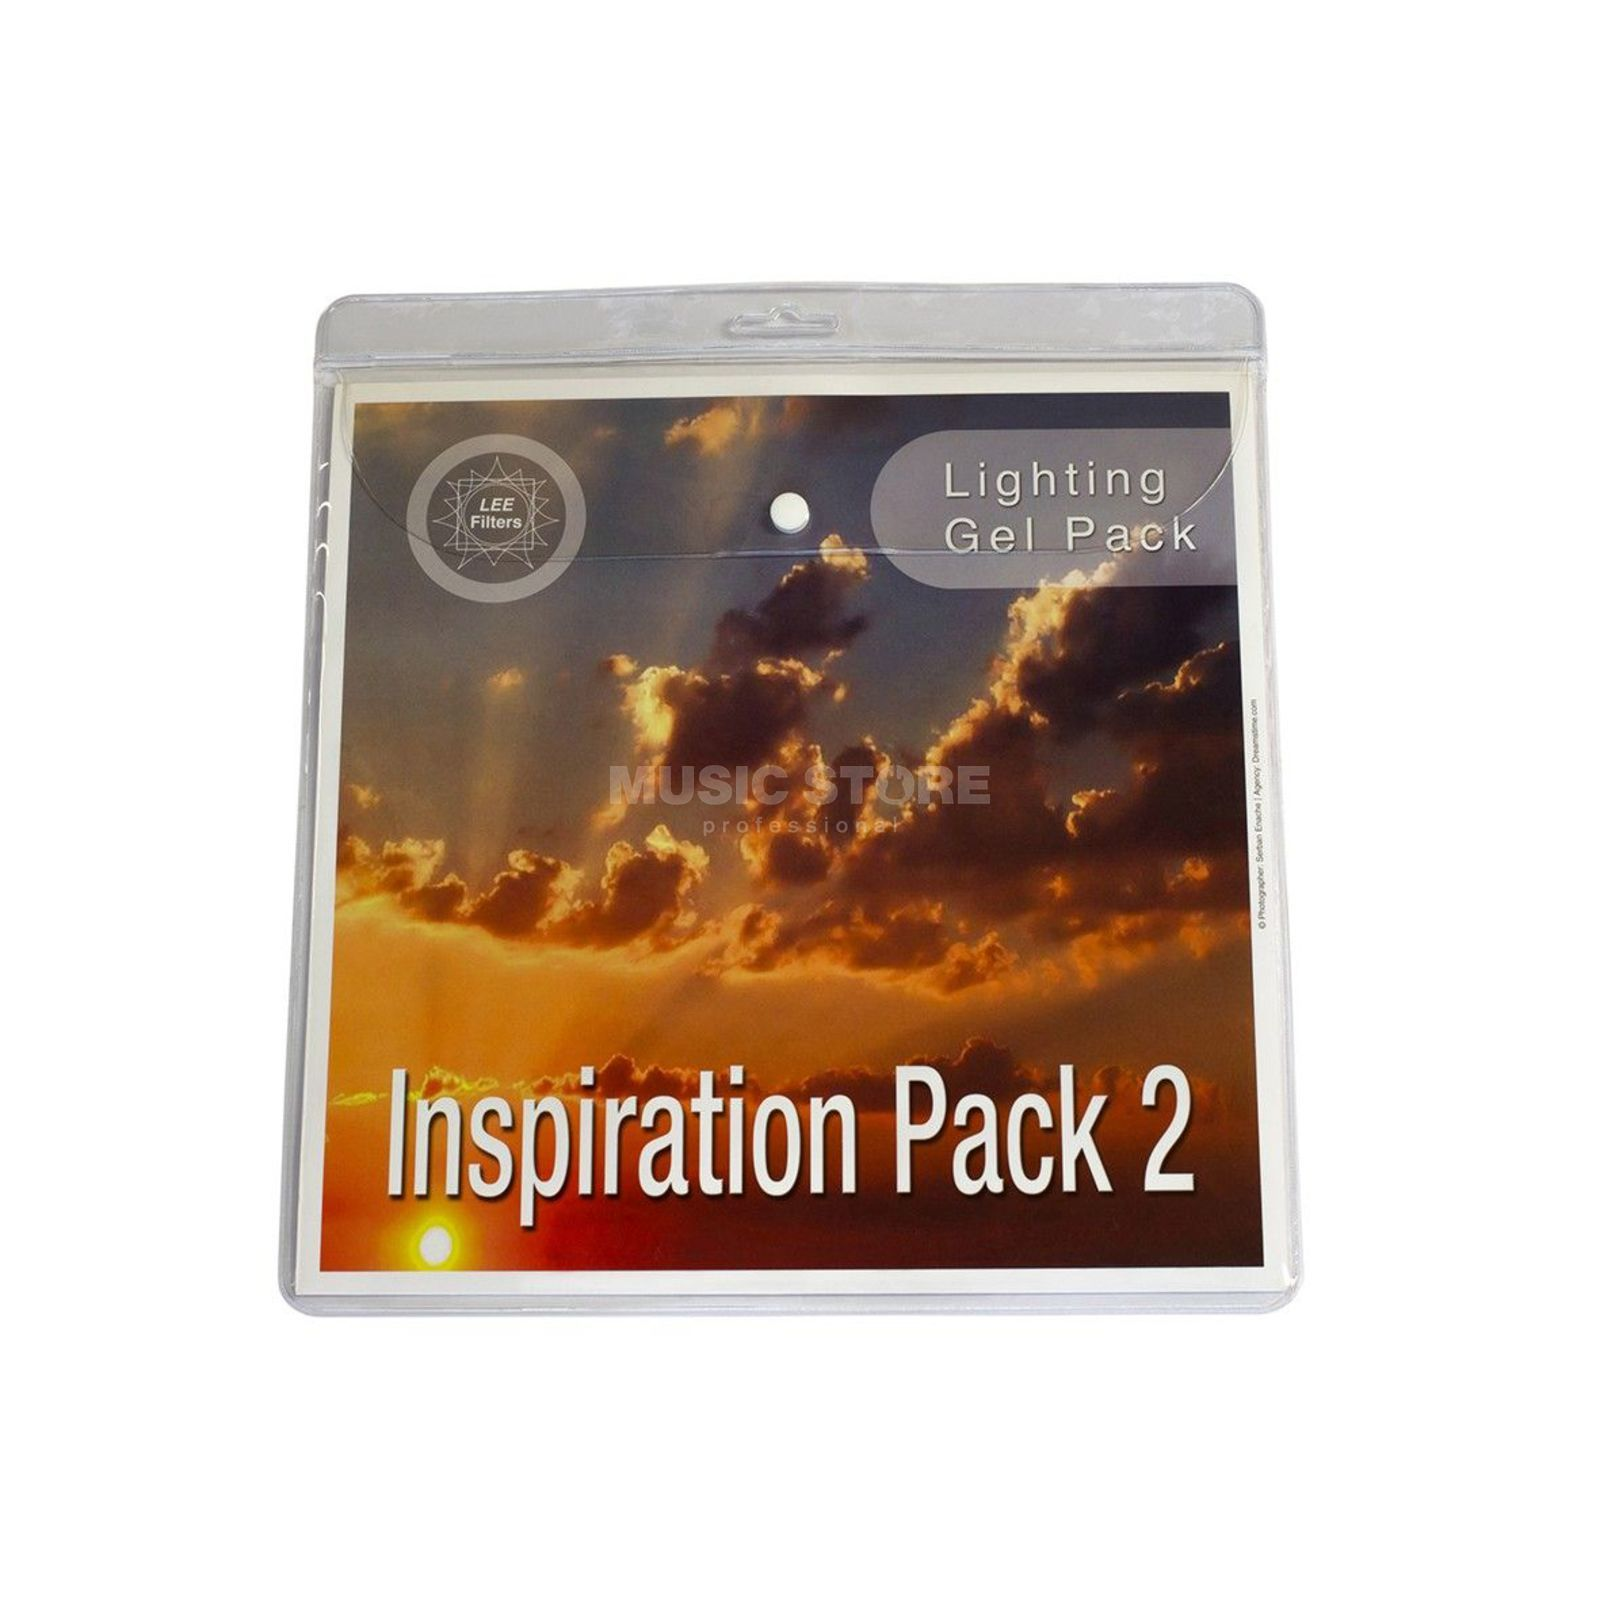 Lee Inspiration Pack 2 Product Image